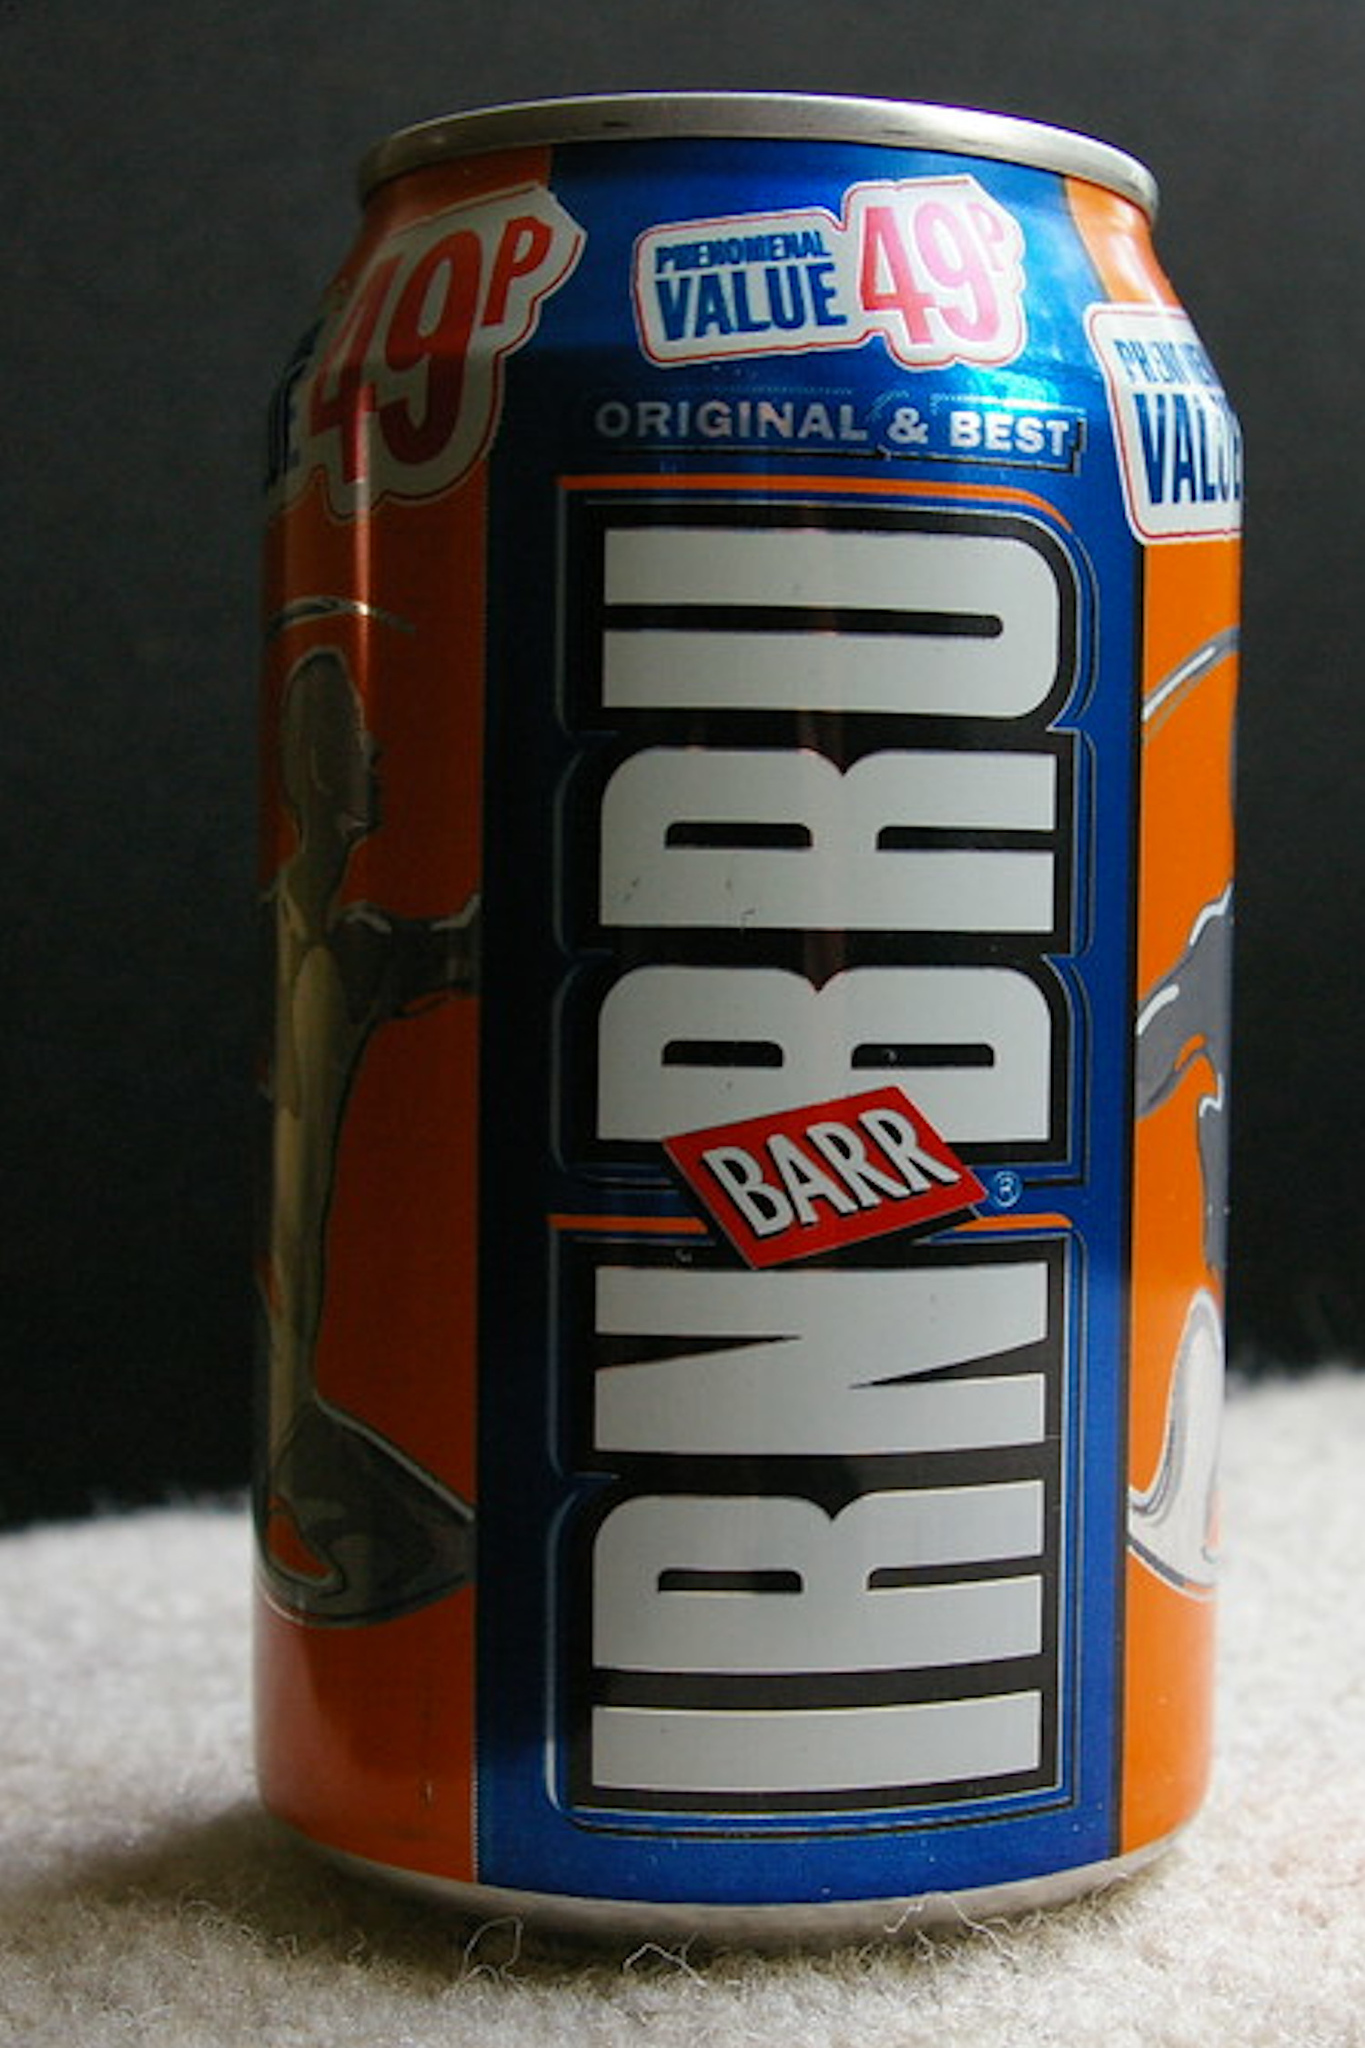 """A caffeinated soft drink Irn-Bru (""""iron brew"""") is often described as the country's """"other national drink"""" after whisky."""